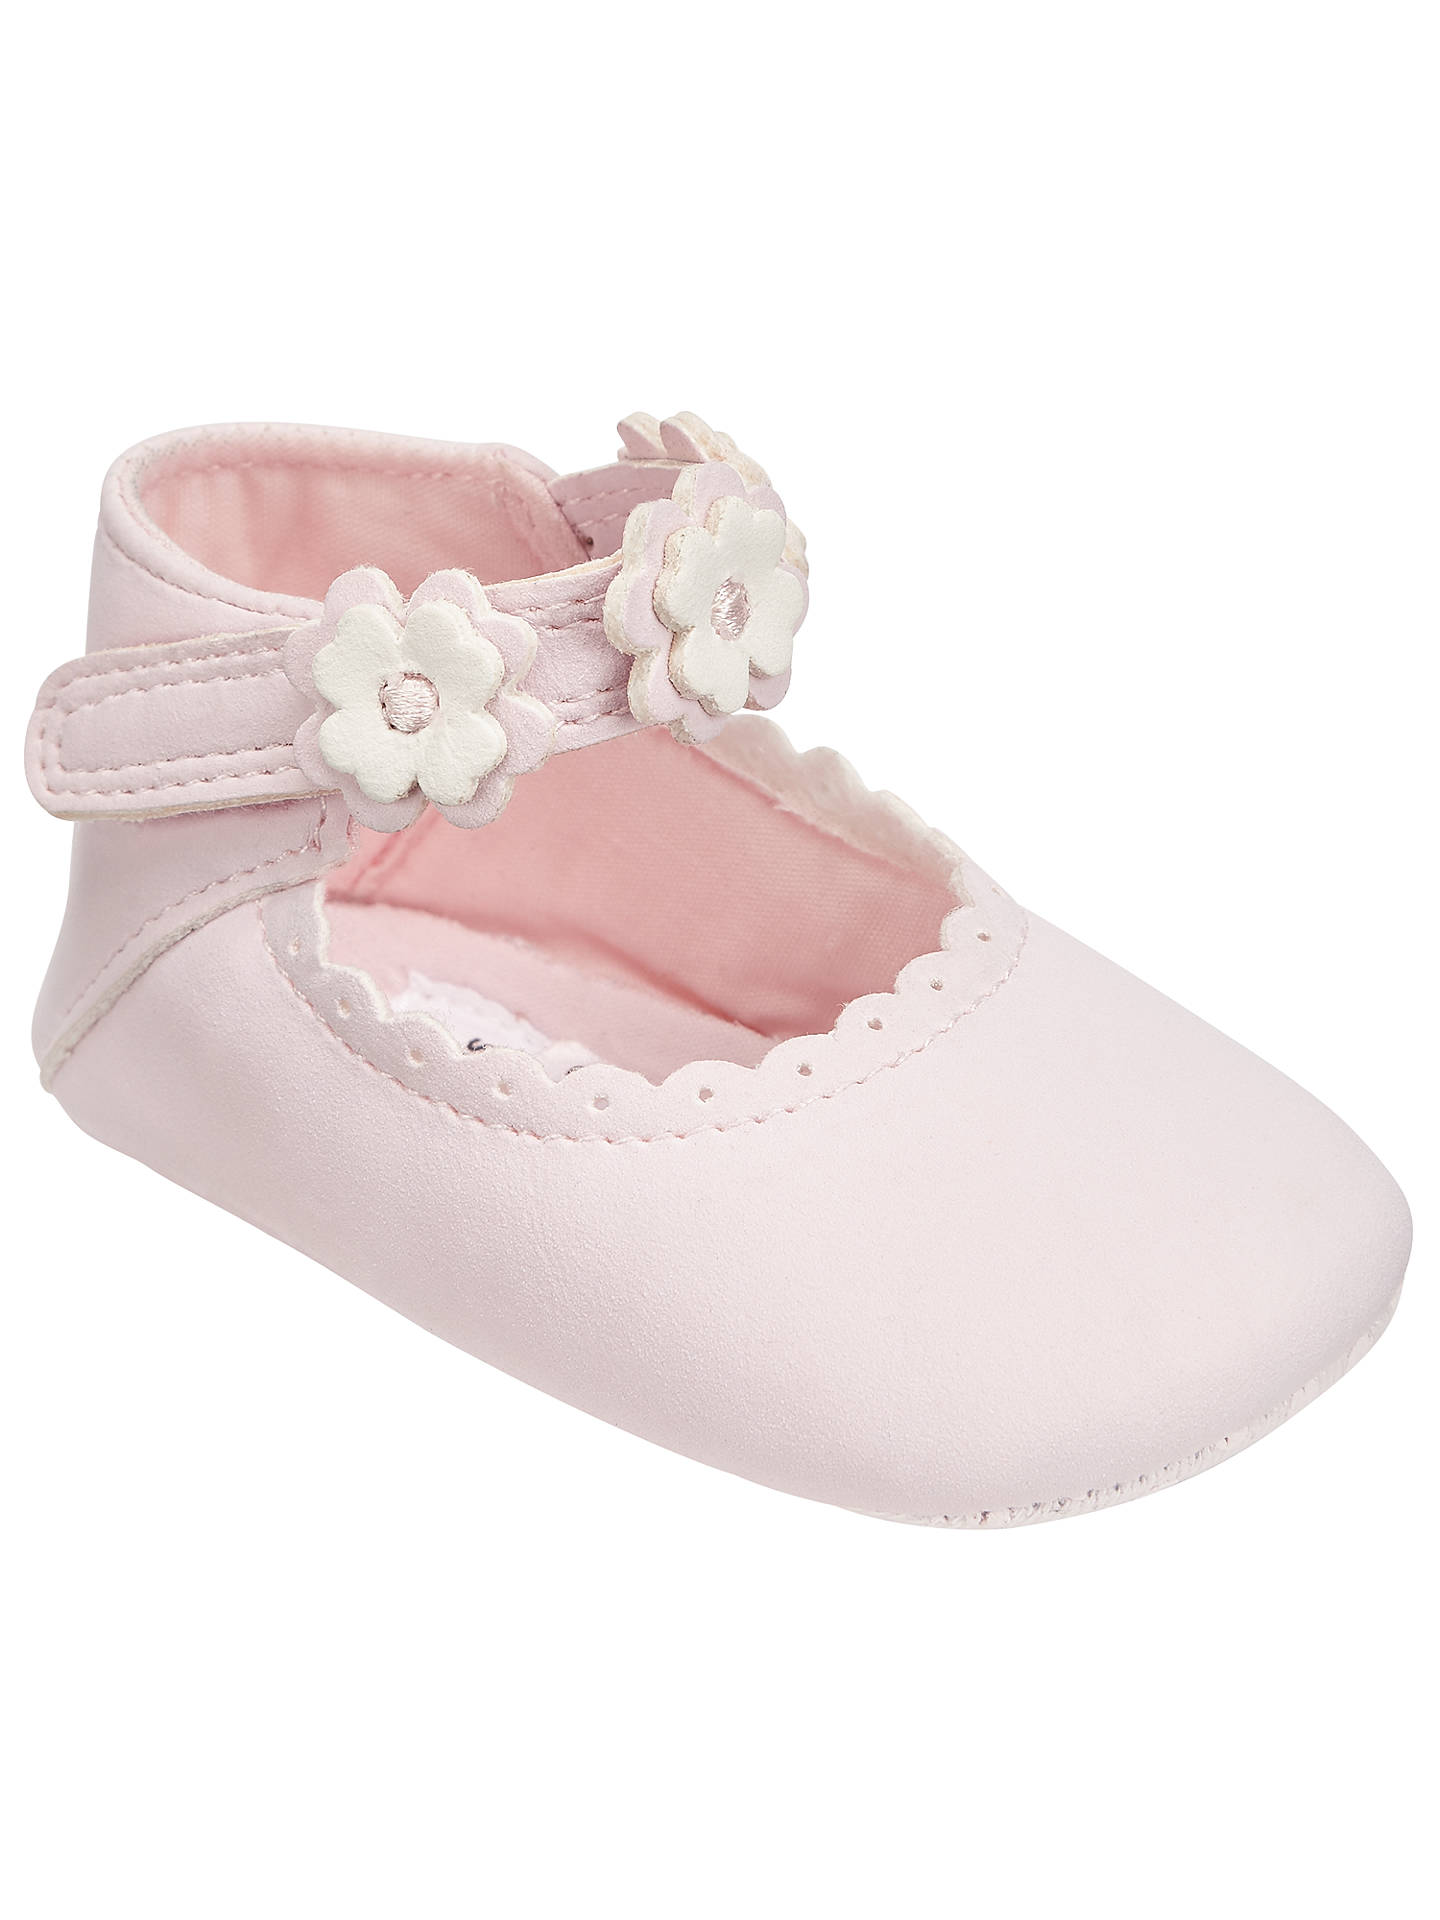 John Lewis Baby Floral Applique Mary Jane Pram Shoes, Pink ...